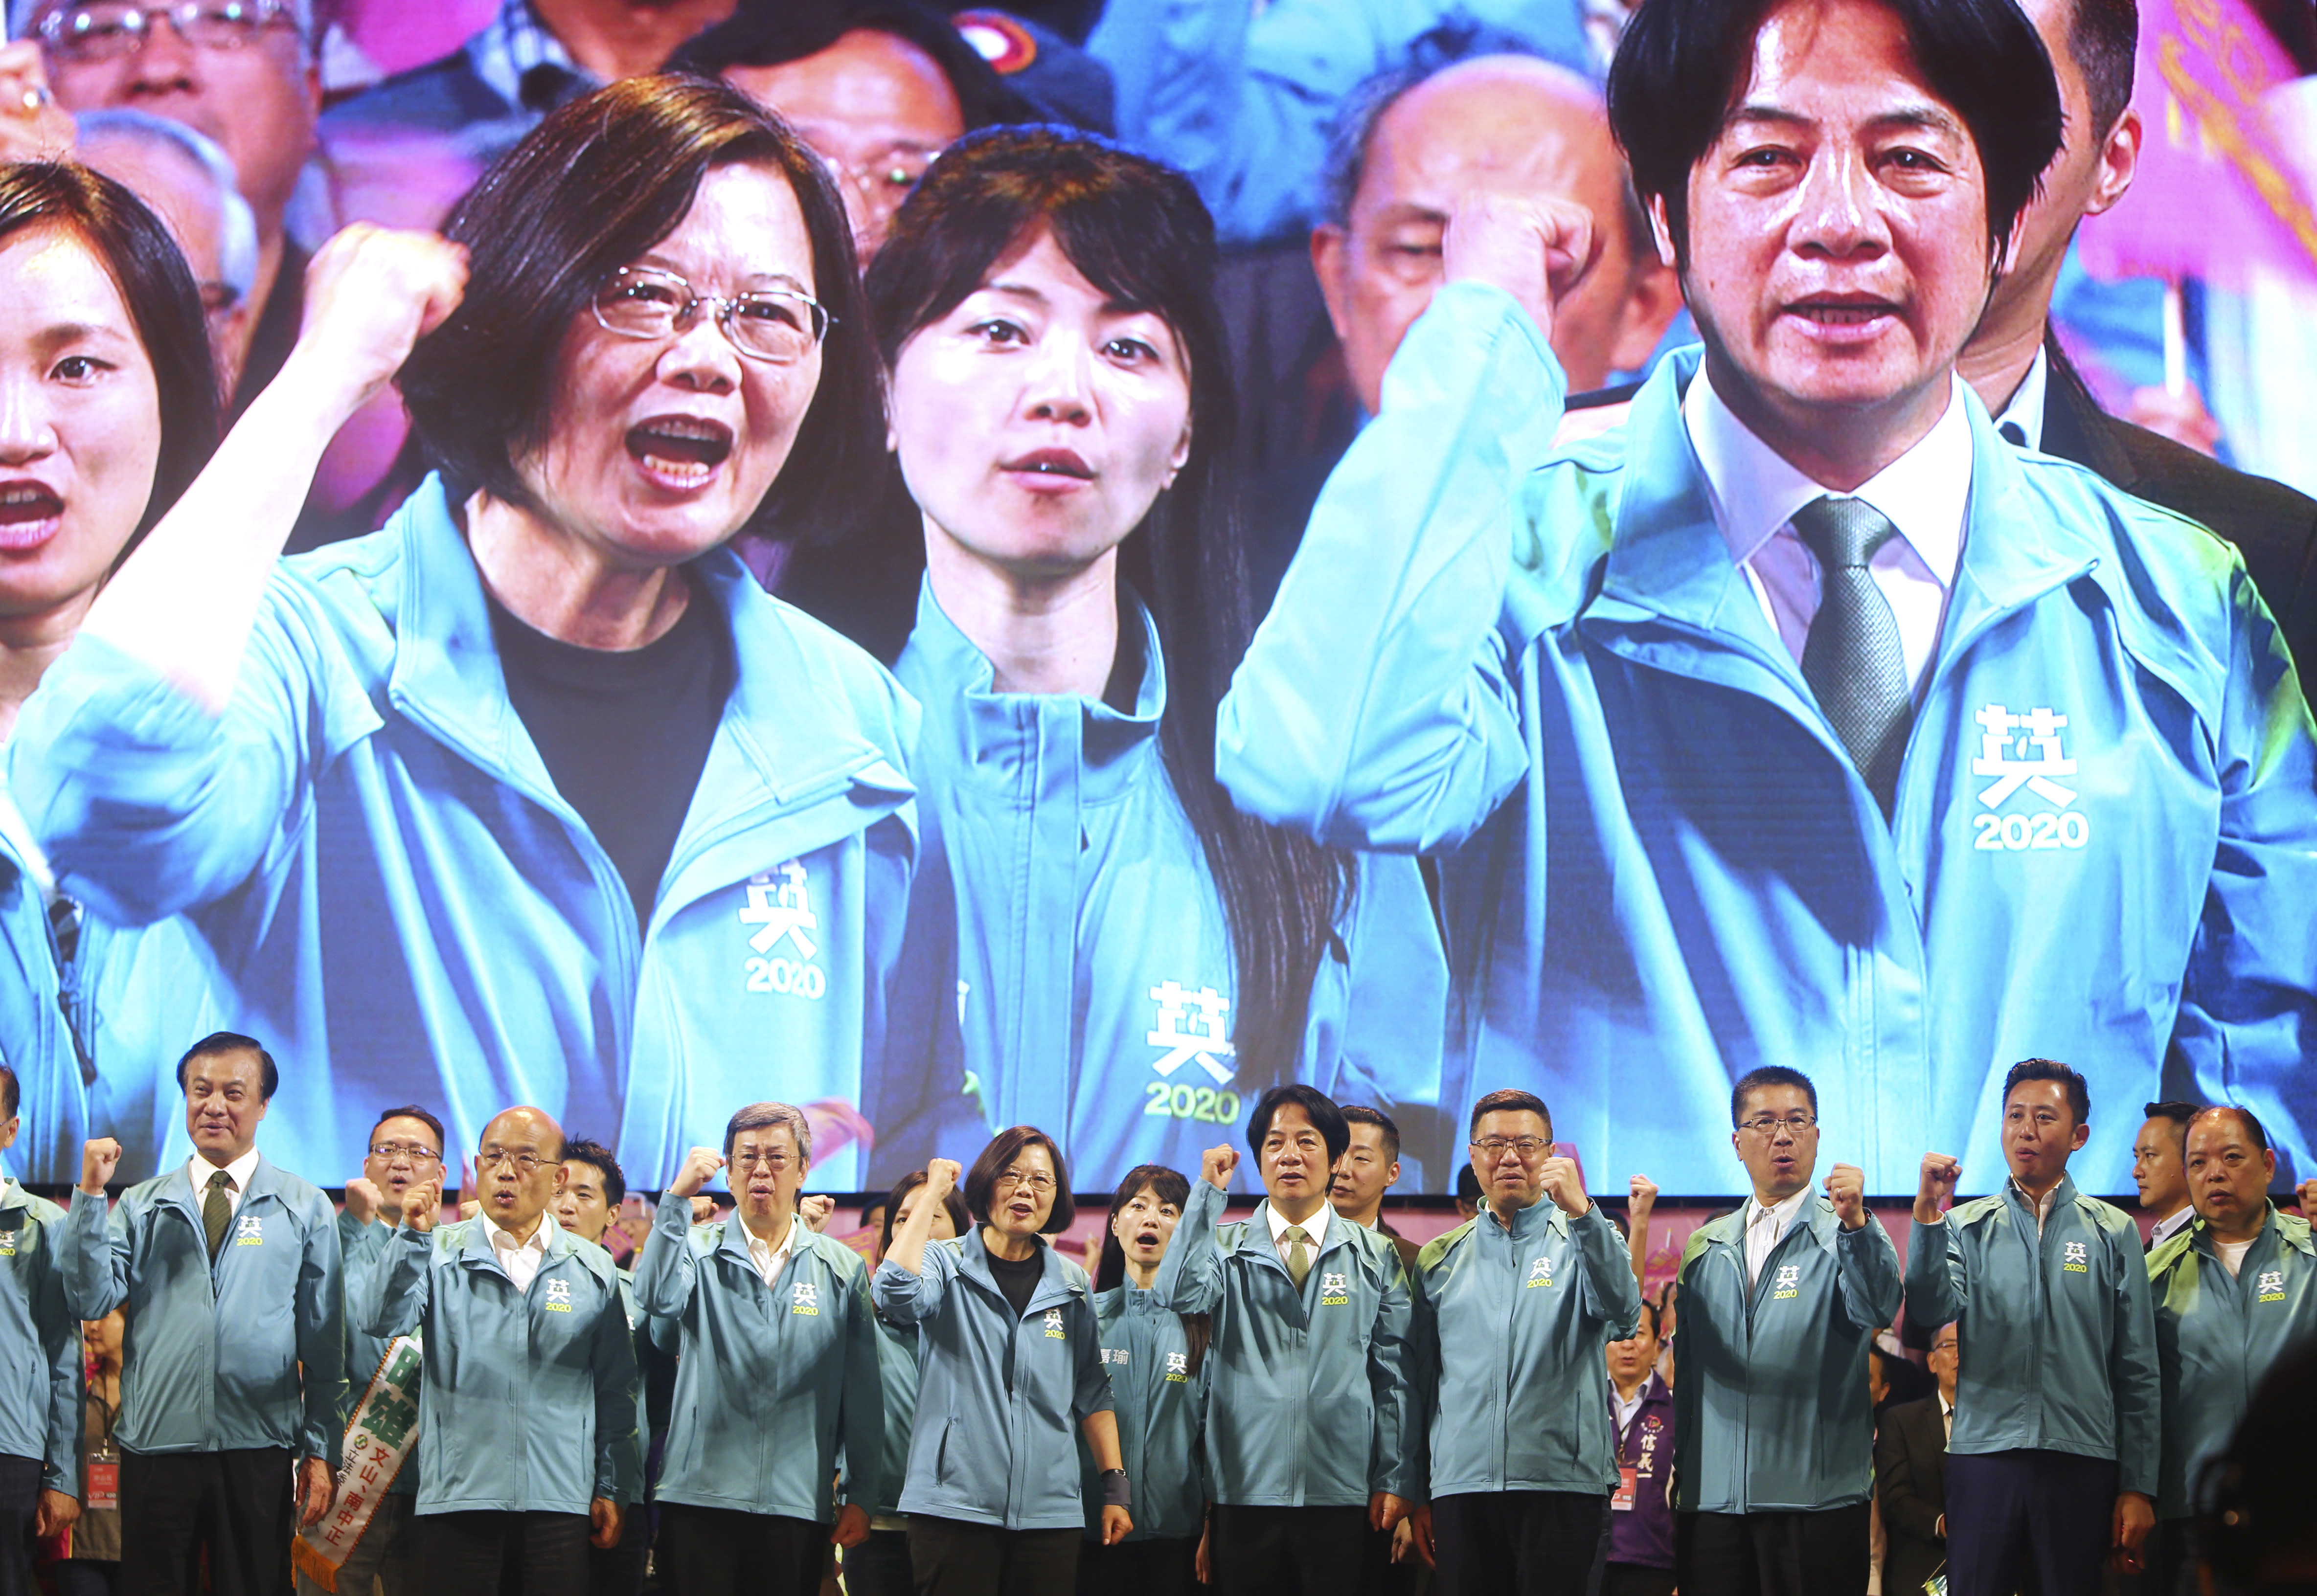 Taiwan President and Democratic Progressive Party presidential candidate Tsai Ing-wen, front fourth from left, and her running mate William Lai, fifth left, are seen on screen above as Tsai launches her re-election campaign in Taipei, Taiwan, Sunday, Nov. 17, 2019. Taiwan will hold its presidential election on Jan. 11, 2020. (AP Photo/Chiang Ying-ying)